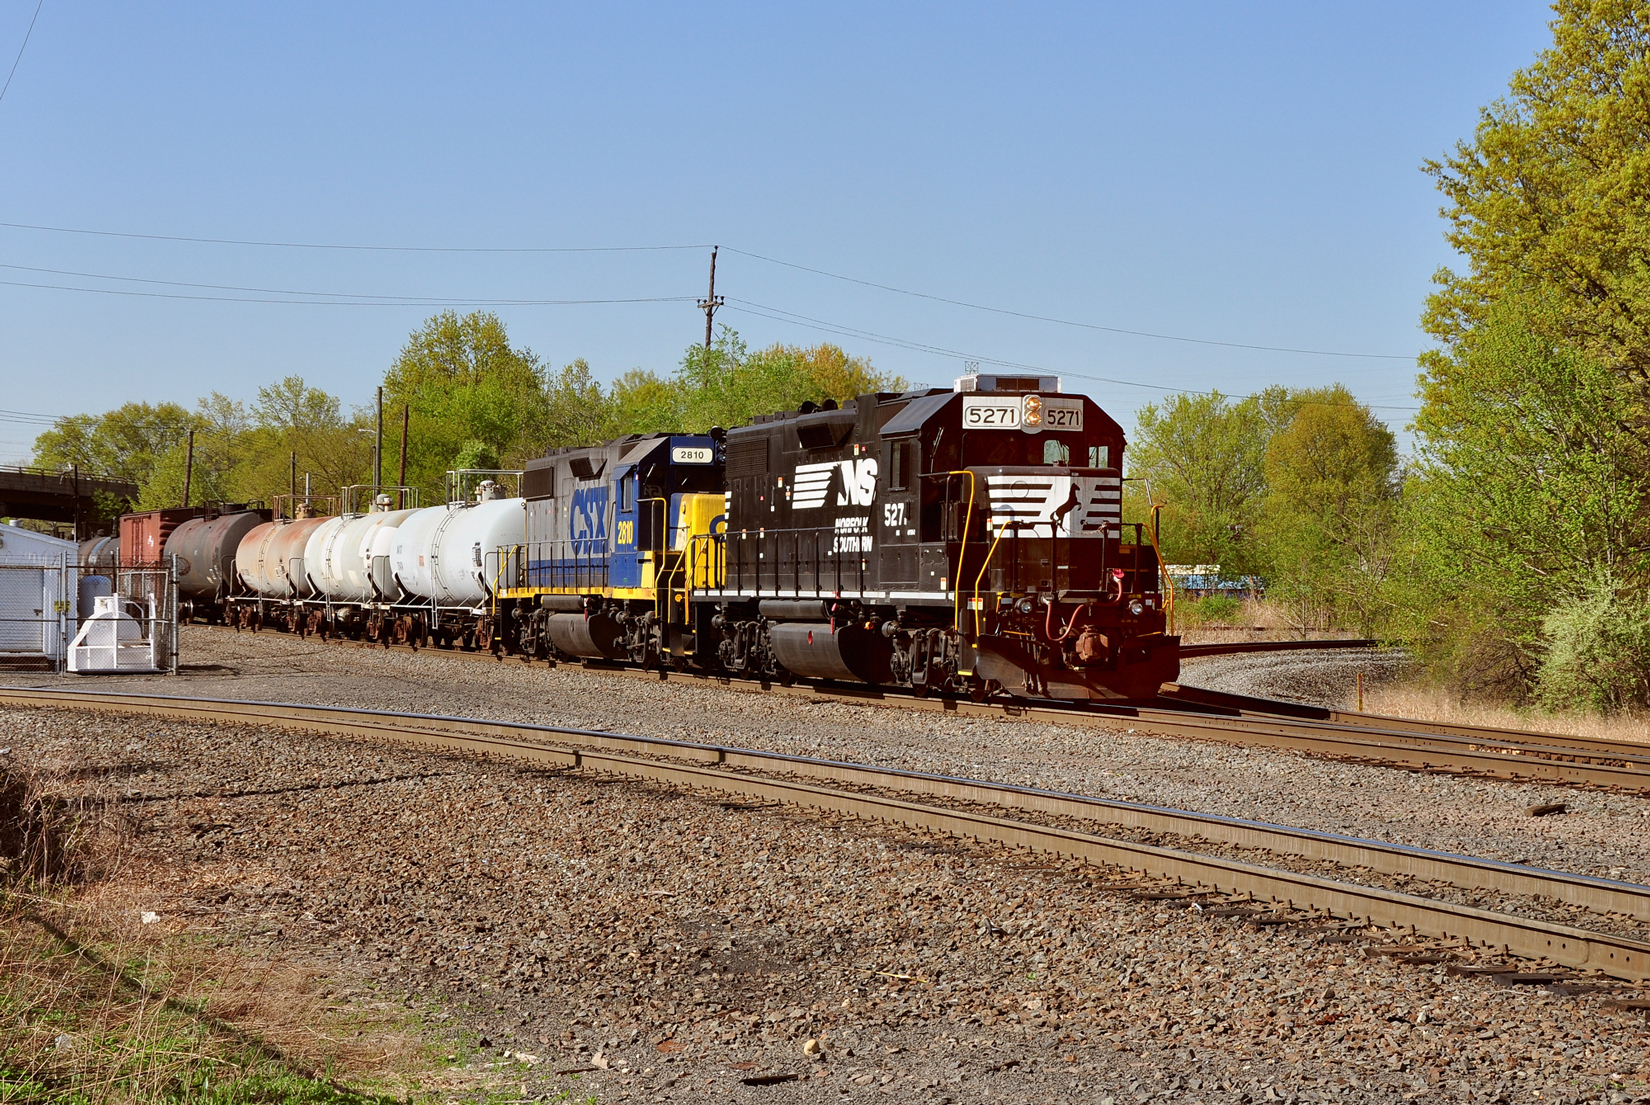 Classic EMD locomotives continue to work hard into their golden years